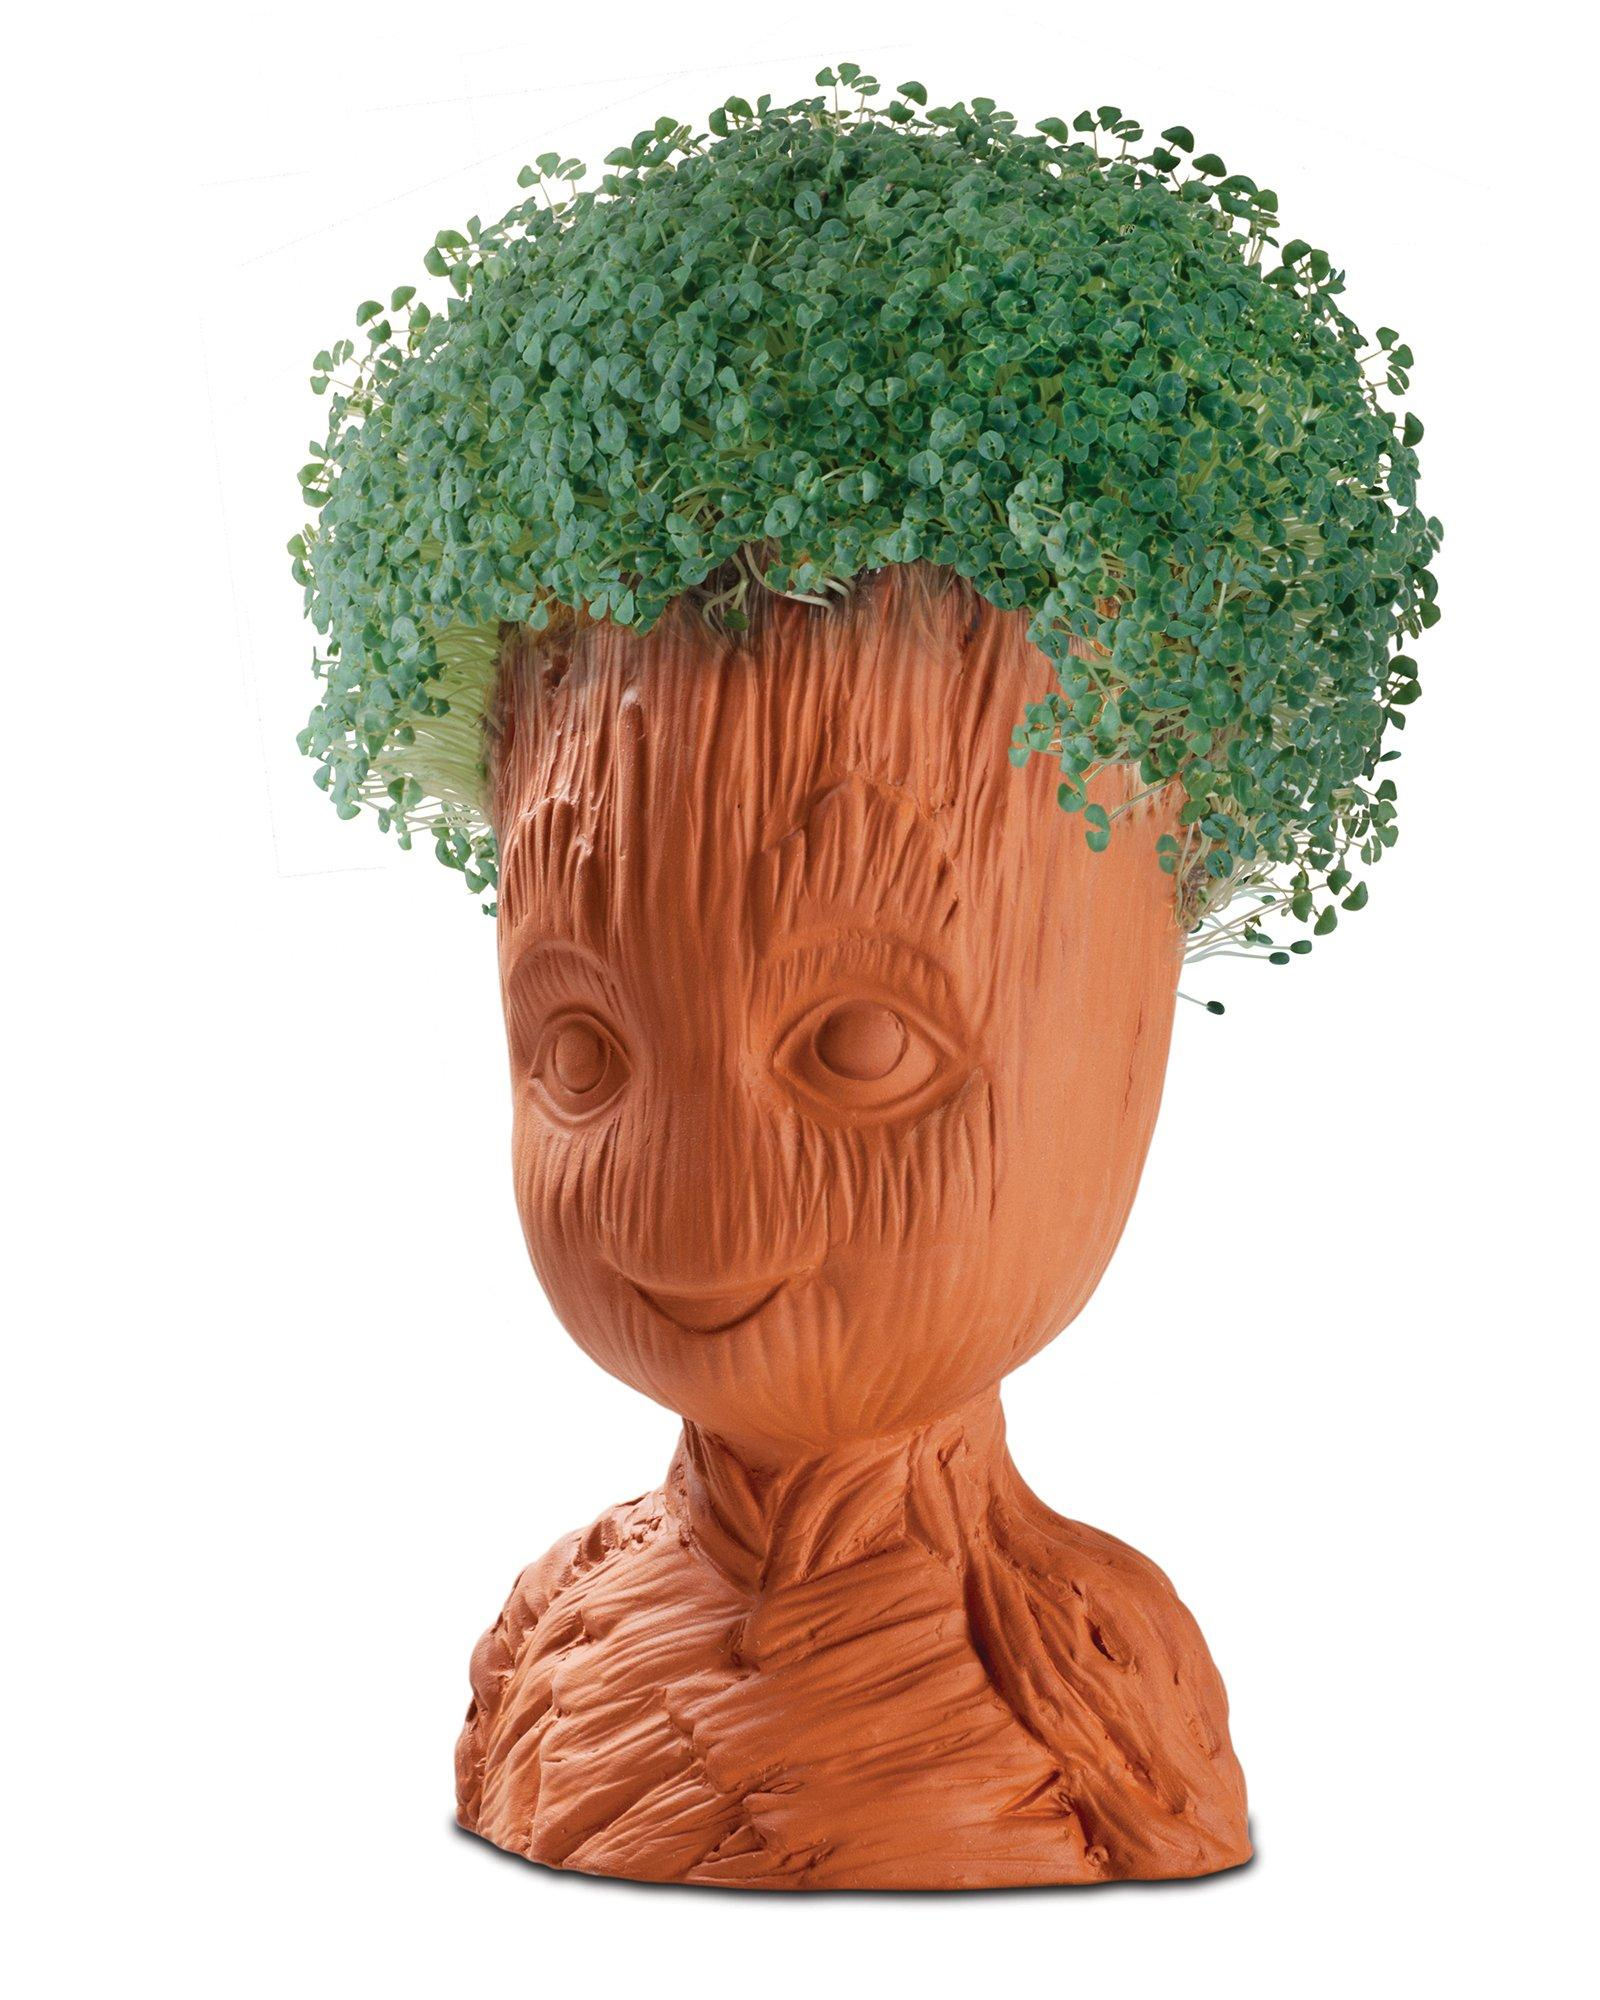 Chia Pet Images : images, Groot, GameStop